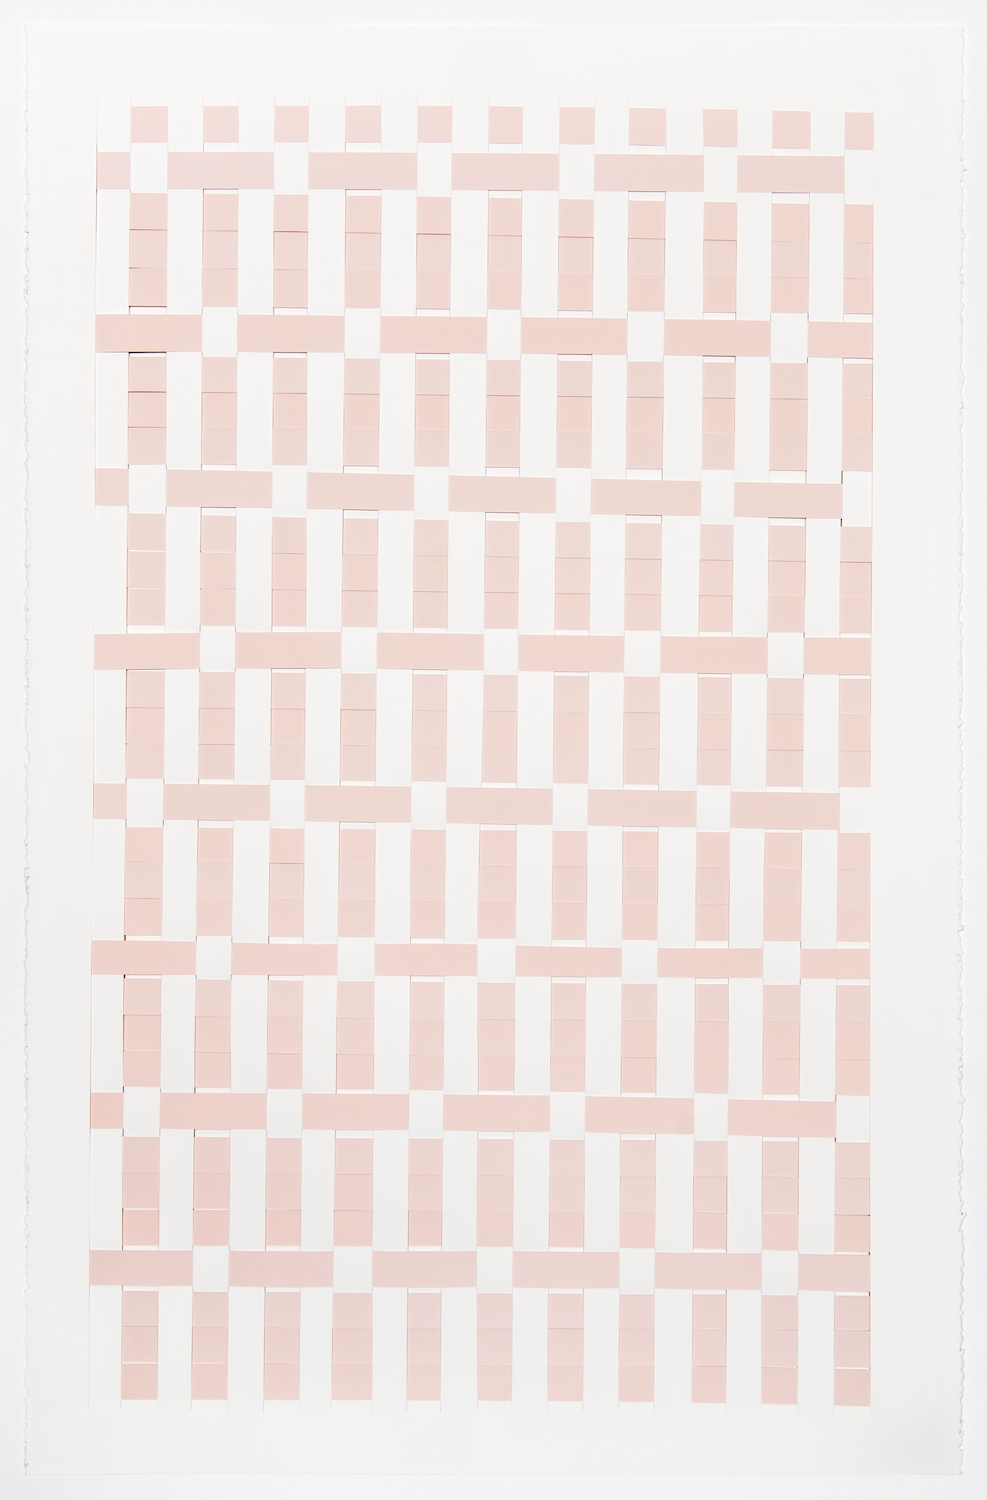 Michelle Graber  Untitled  2013 Paper and Color-aid 40h x 26w in MGrab307